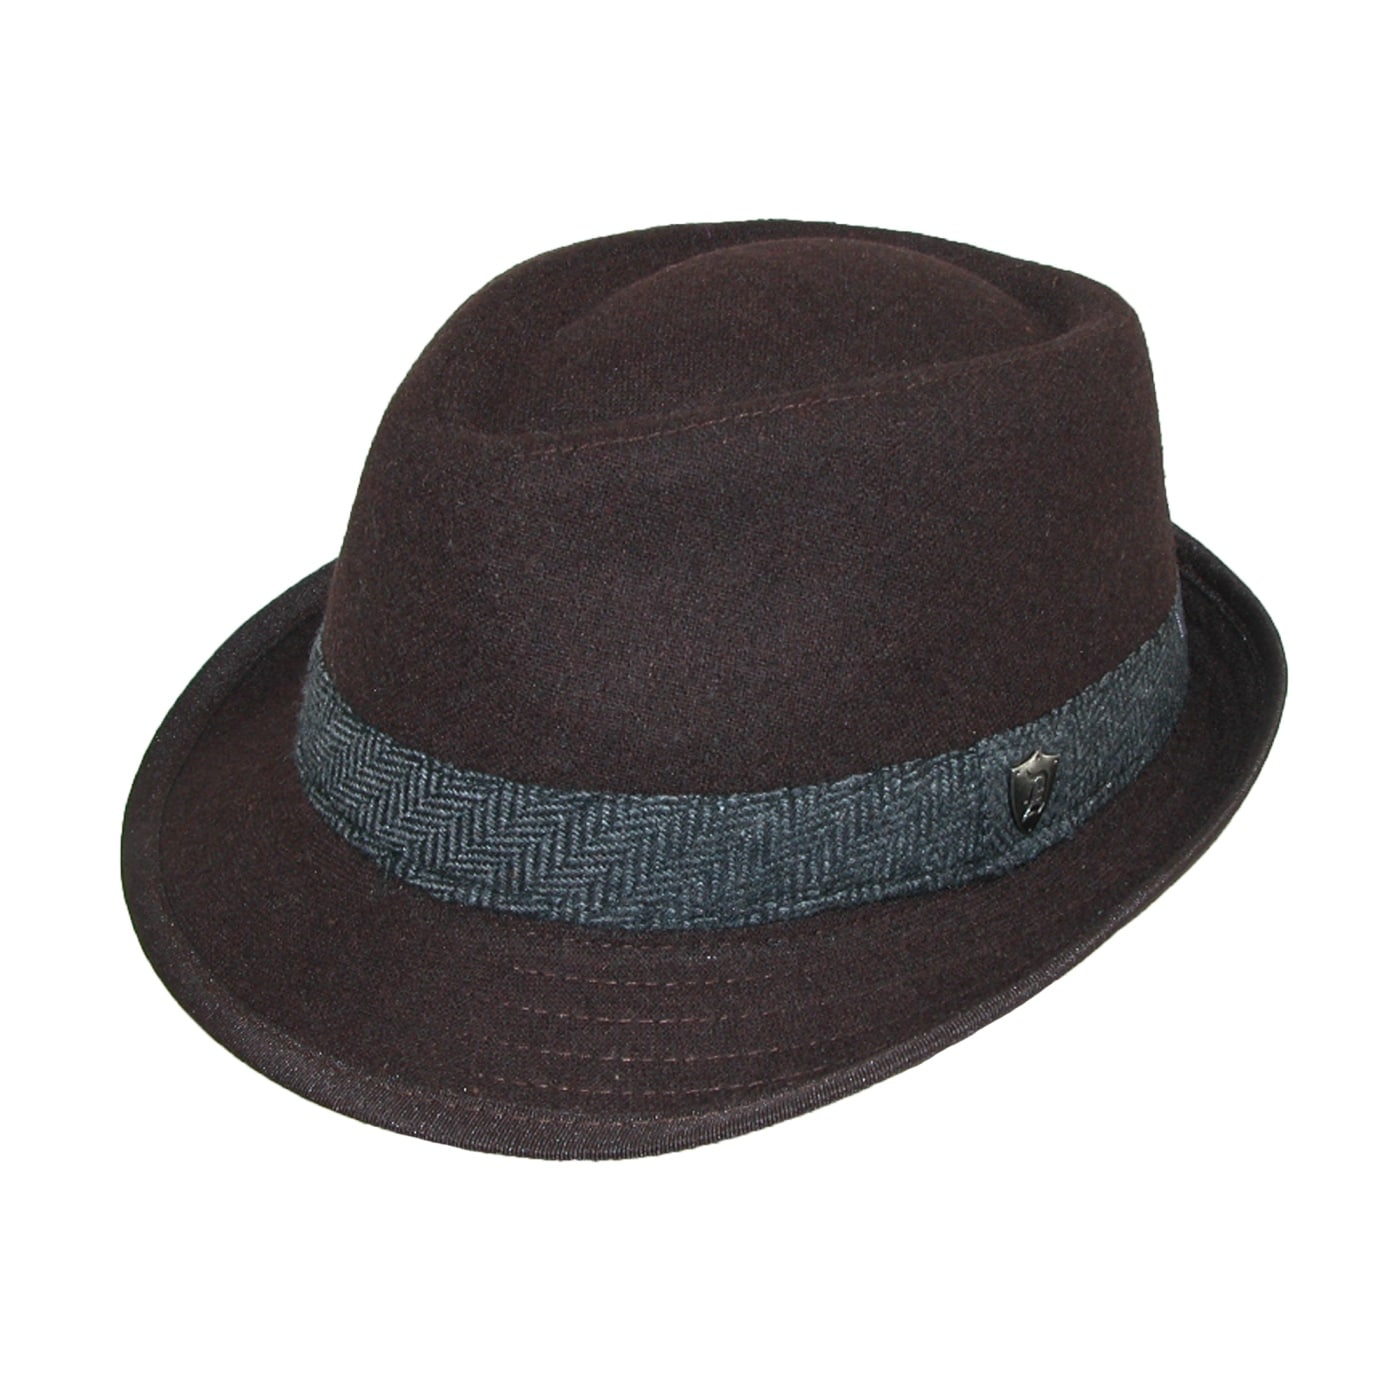 8aaef48aad4 Shop Dorfman Pacific Men's Wool Blend Fedora Hat with Herringbone Band -  Free Shipping On Orders Over $45 - Overstock - 14254960